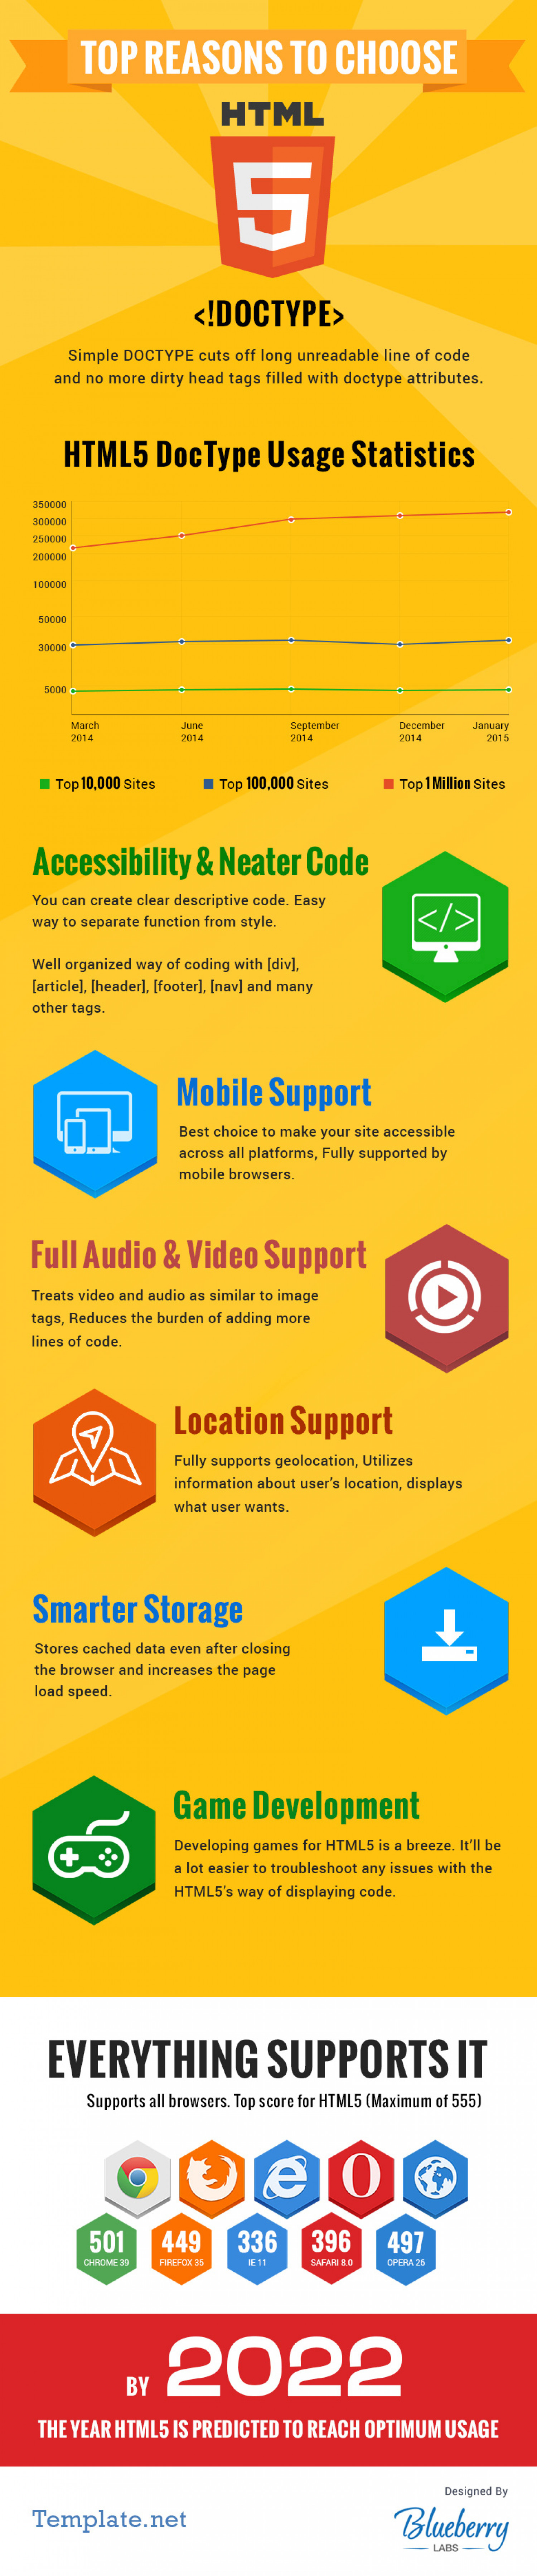 Top Reasons to Choose HTML5 Right Now Infographic